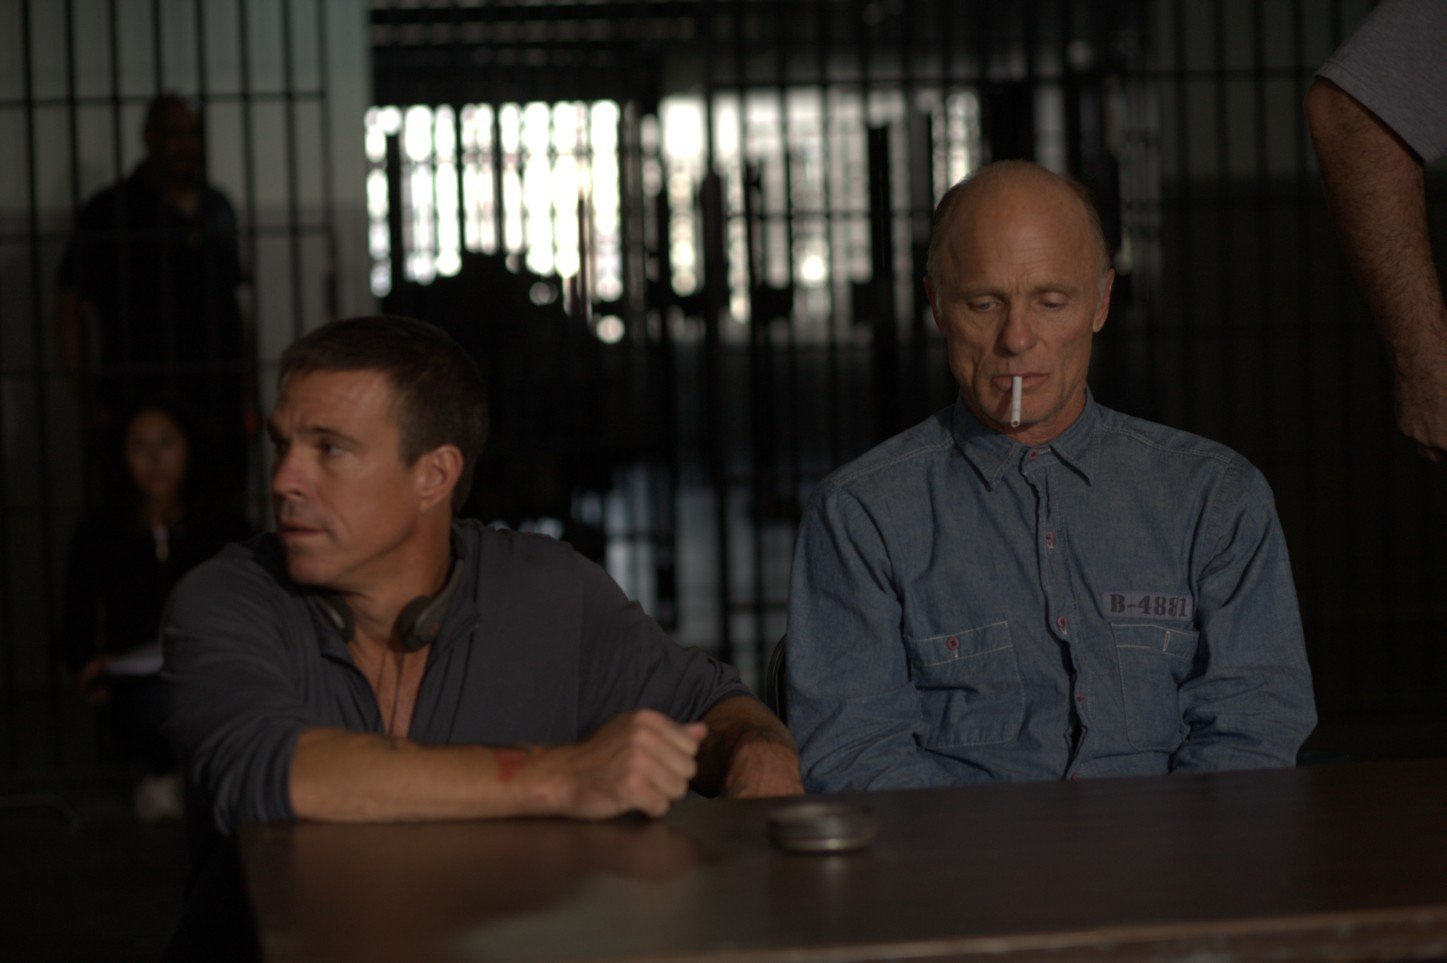 Ash Adams and Ed Harris on the set of Ash's film Once fallen